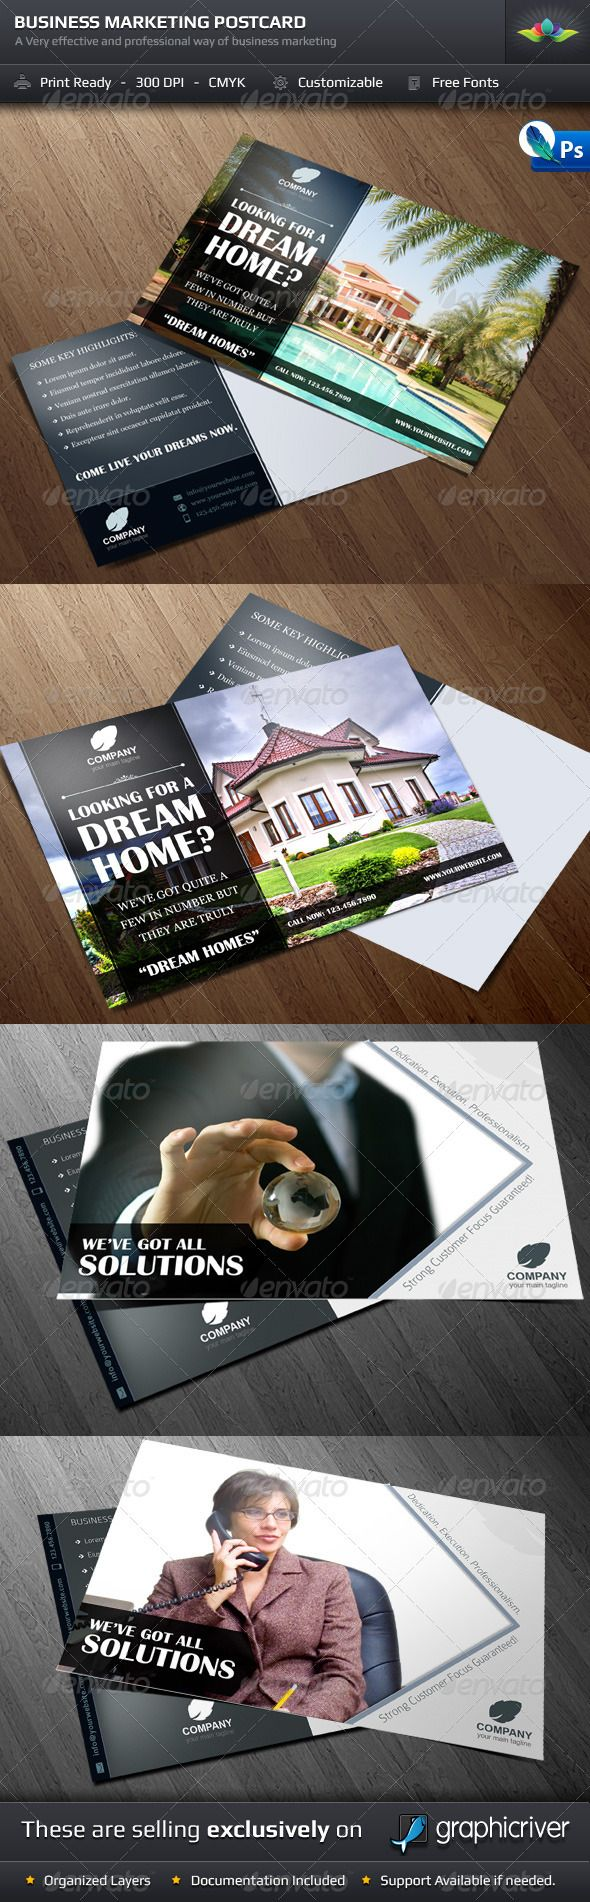 Business Marketing Postcard Template Set $6.00